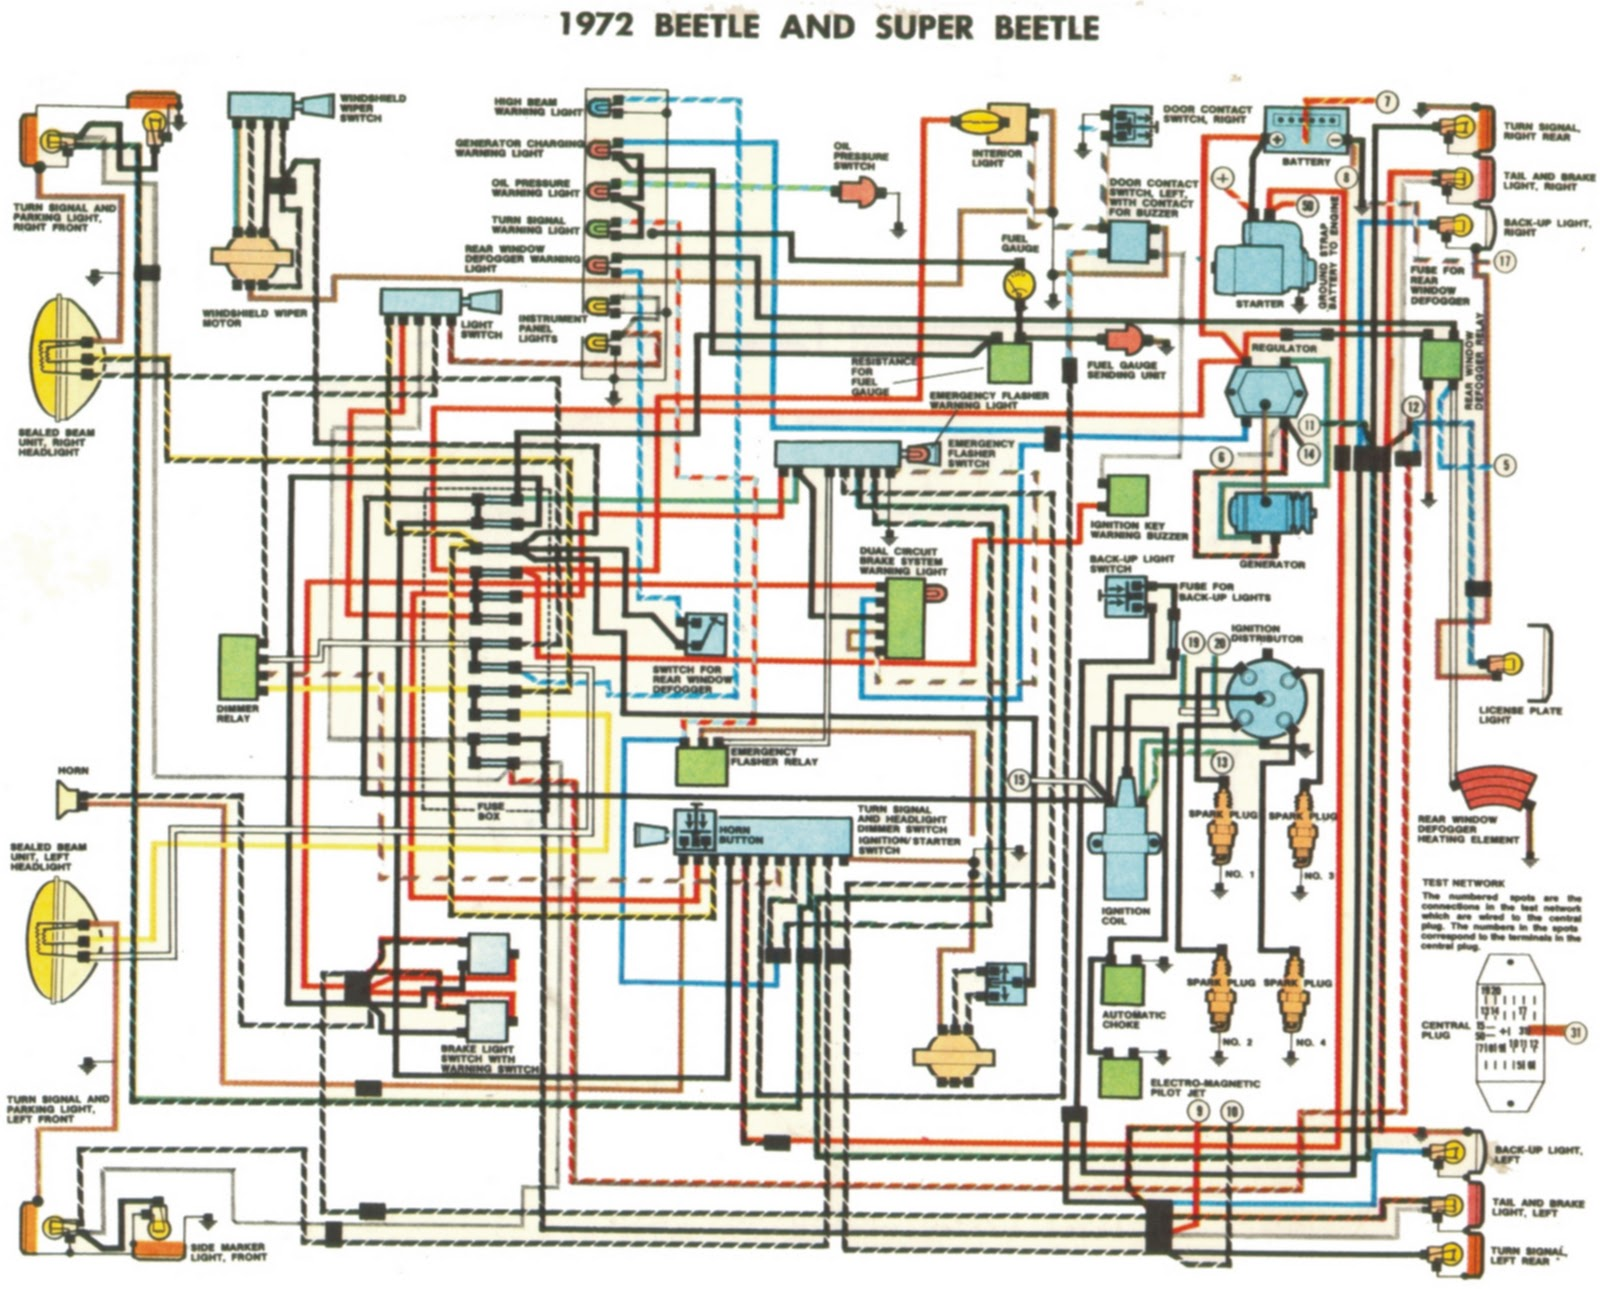 1972 beetle and super beetle wiring diagrams wiring diagram for 1971 vw beetle readingrat net 1971 vw beetle wiring diagram at panicattacktreatment.co